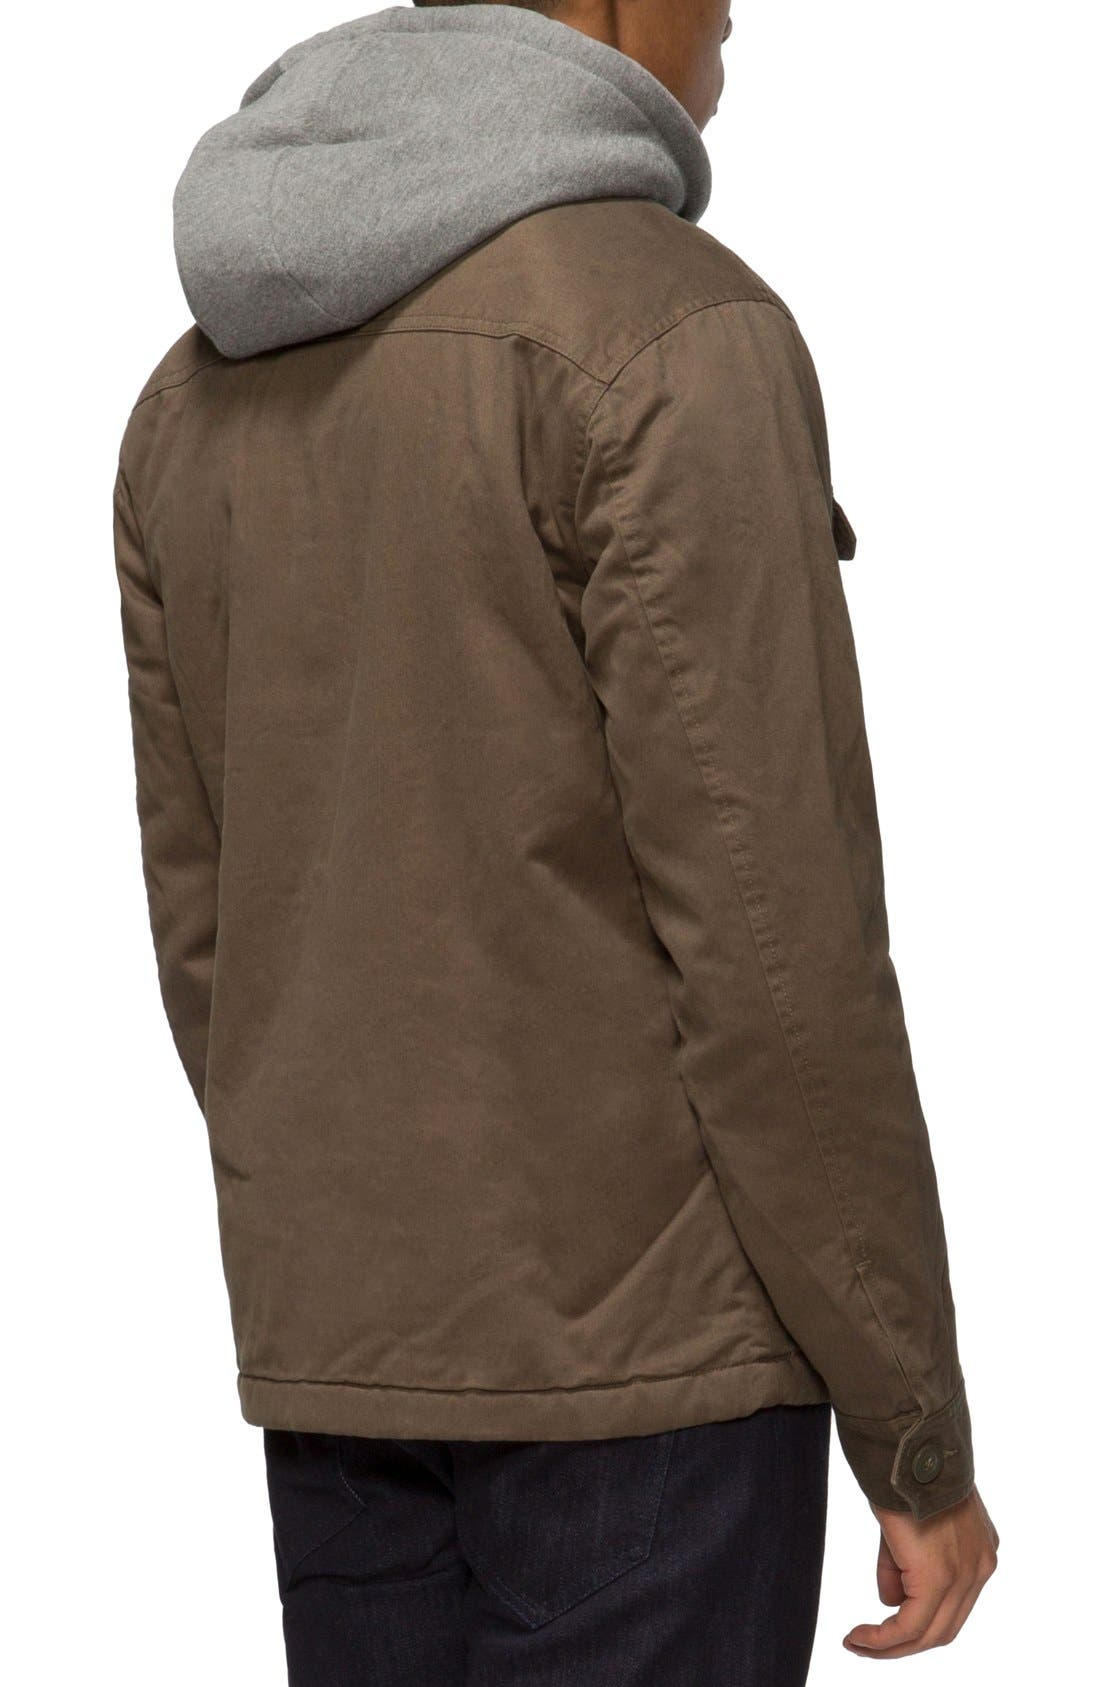 Droogs Plus Field Jacket with Detachable Hood,                             Alternate thumbnail 4, color,                             304